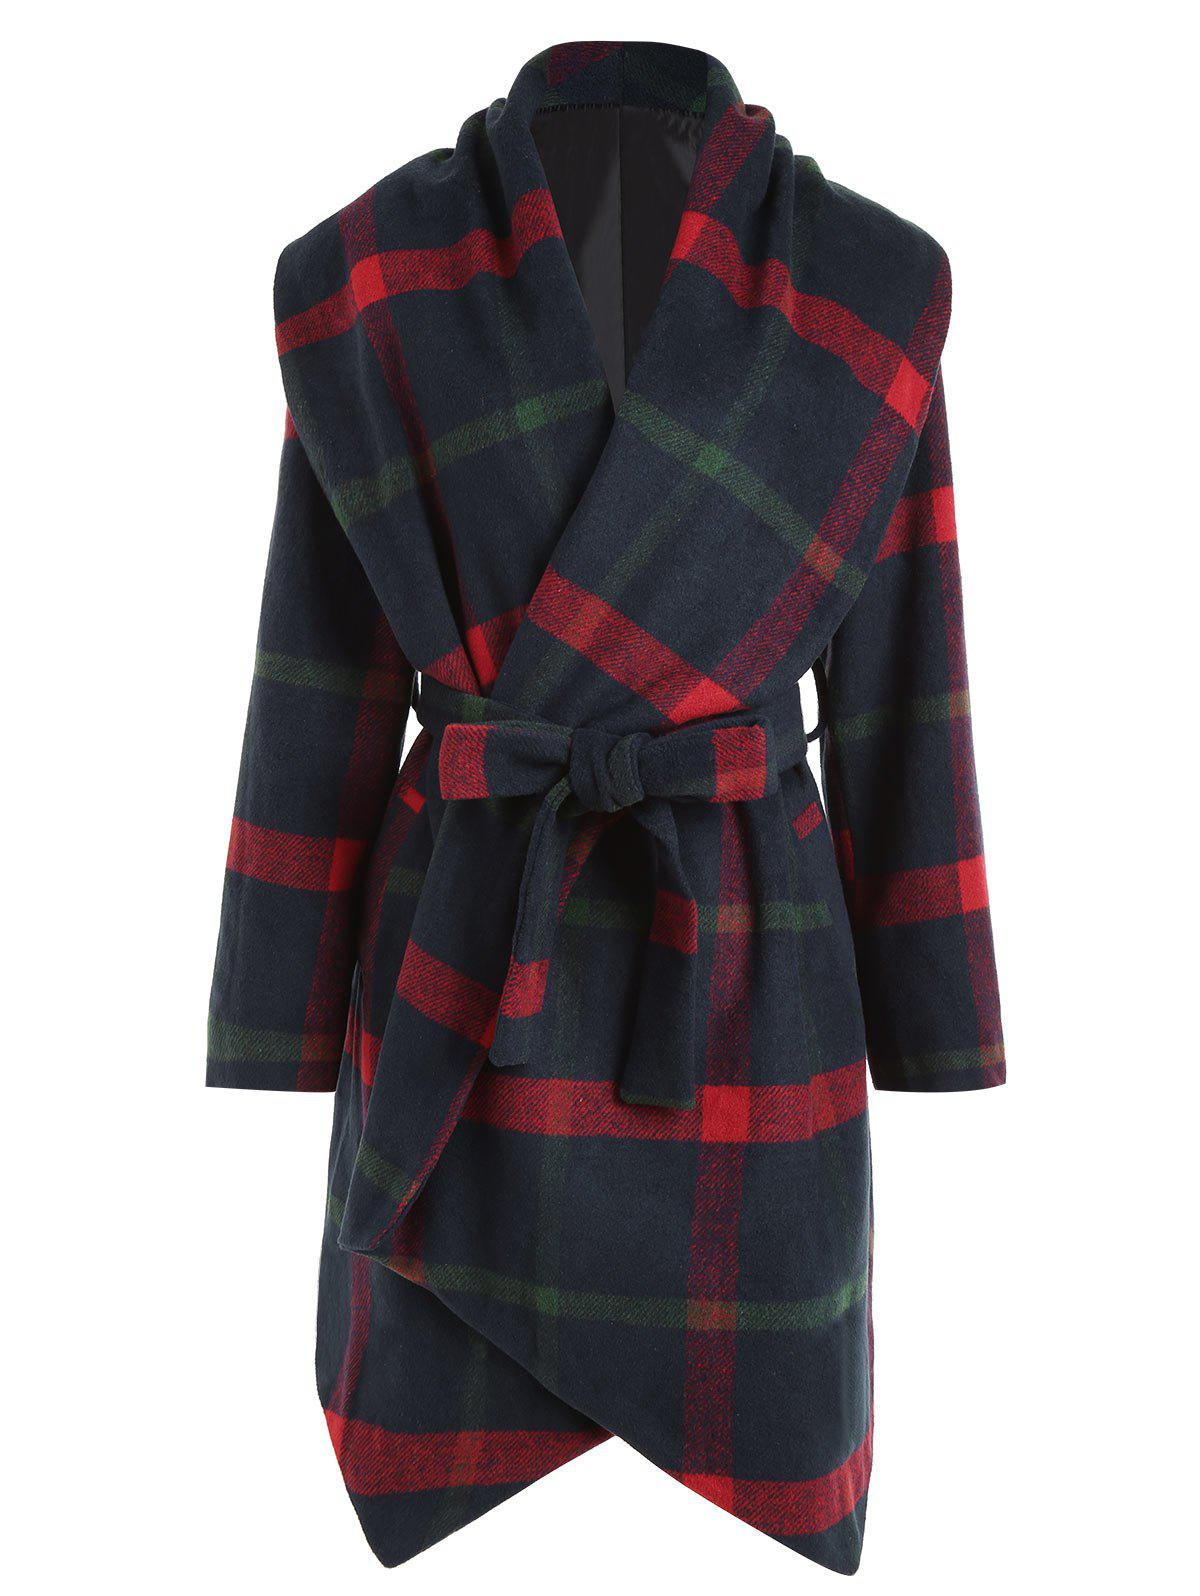 Plaid Wool Blend Belted Plus Size CoatWOMEN<br><br>Size: XL; Color: CHECKED; Clothes Type: Wool &amp; Blends; Material: Polyester; Type: Slim; Shirt Length: Long; Sleeve Length: Full; Collar: Shawl Collar; Pattern Type: Plaid; Style: Fashion; Season: Fall,Winter; With Belt: Yes; Weight: 1.4100kg; Package Contents: 1 x Coat  1 x Belt;